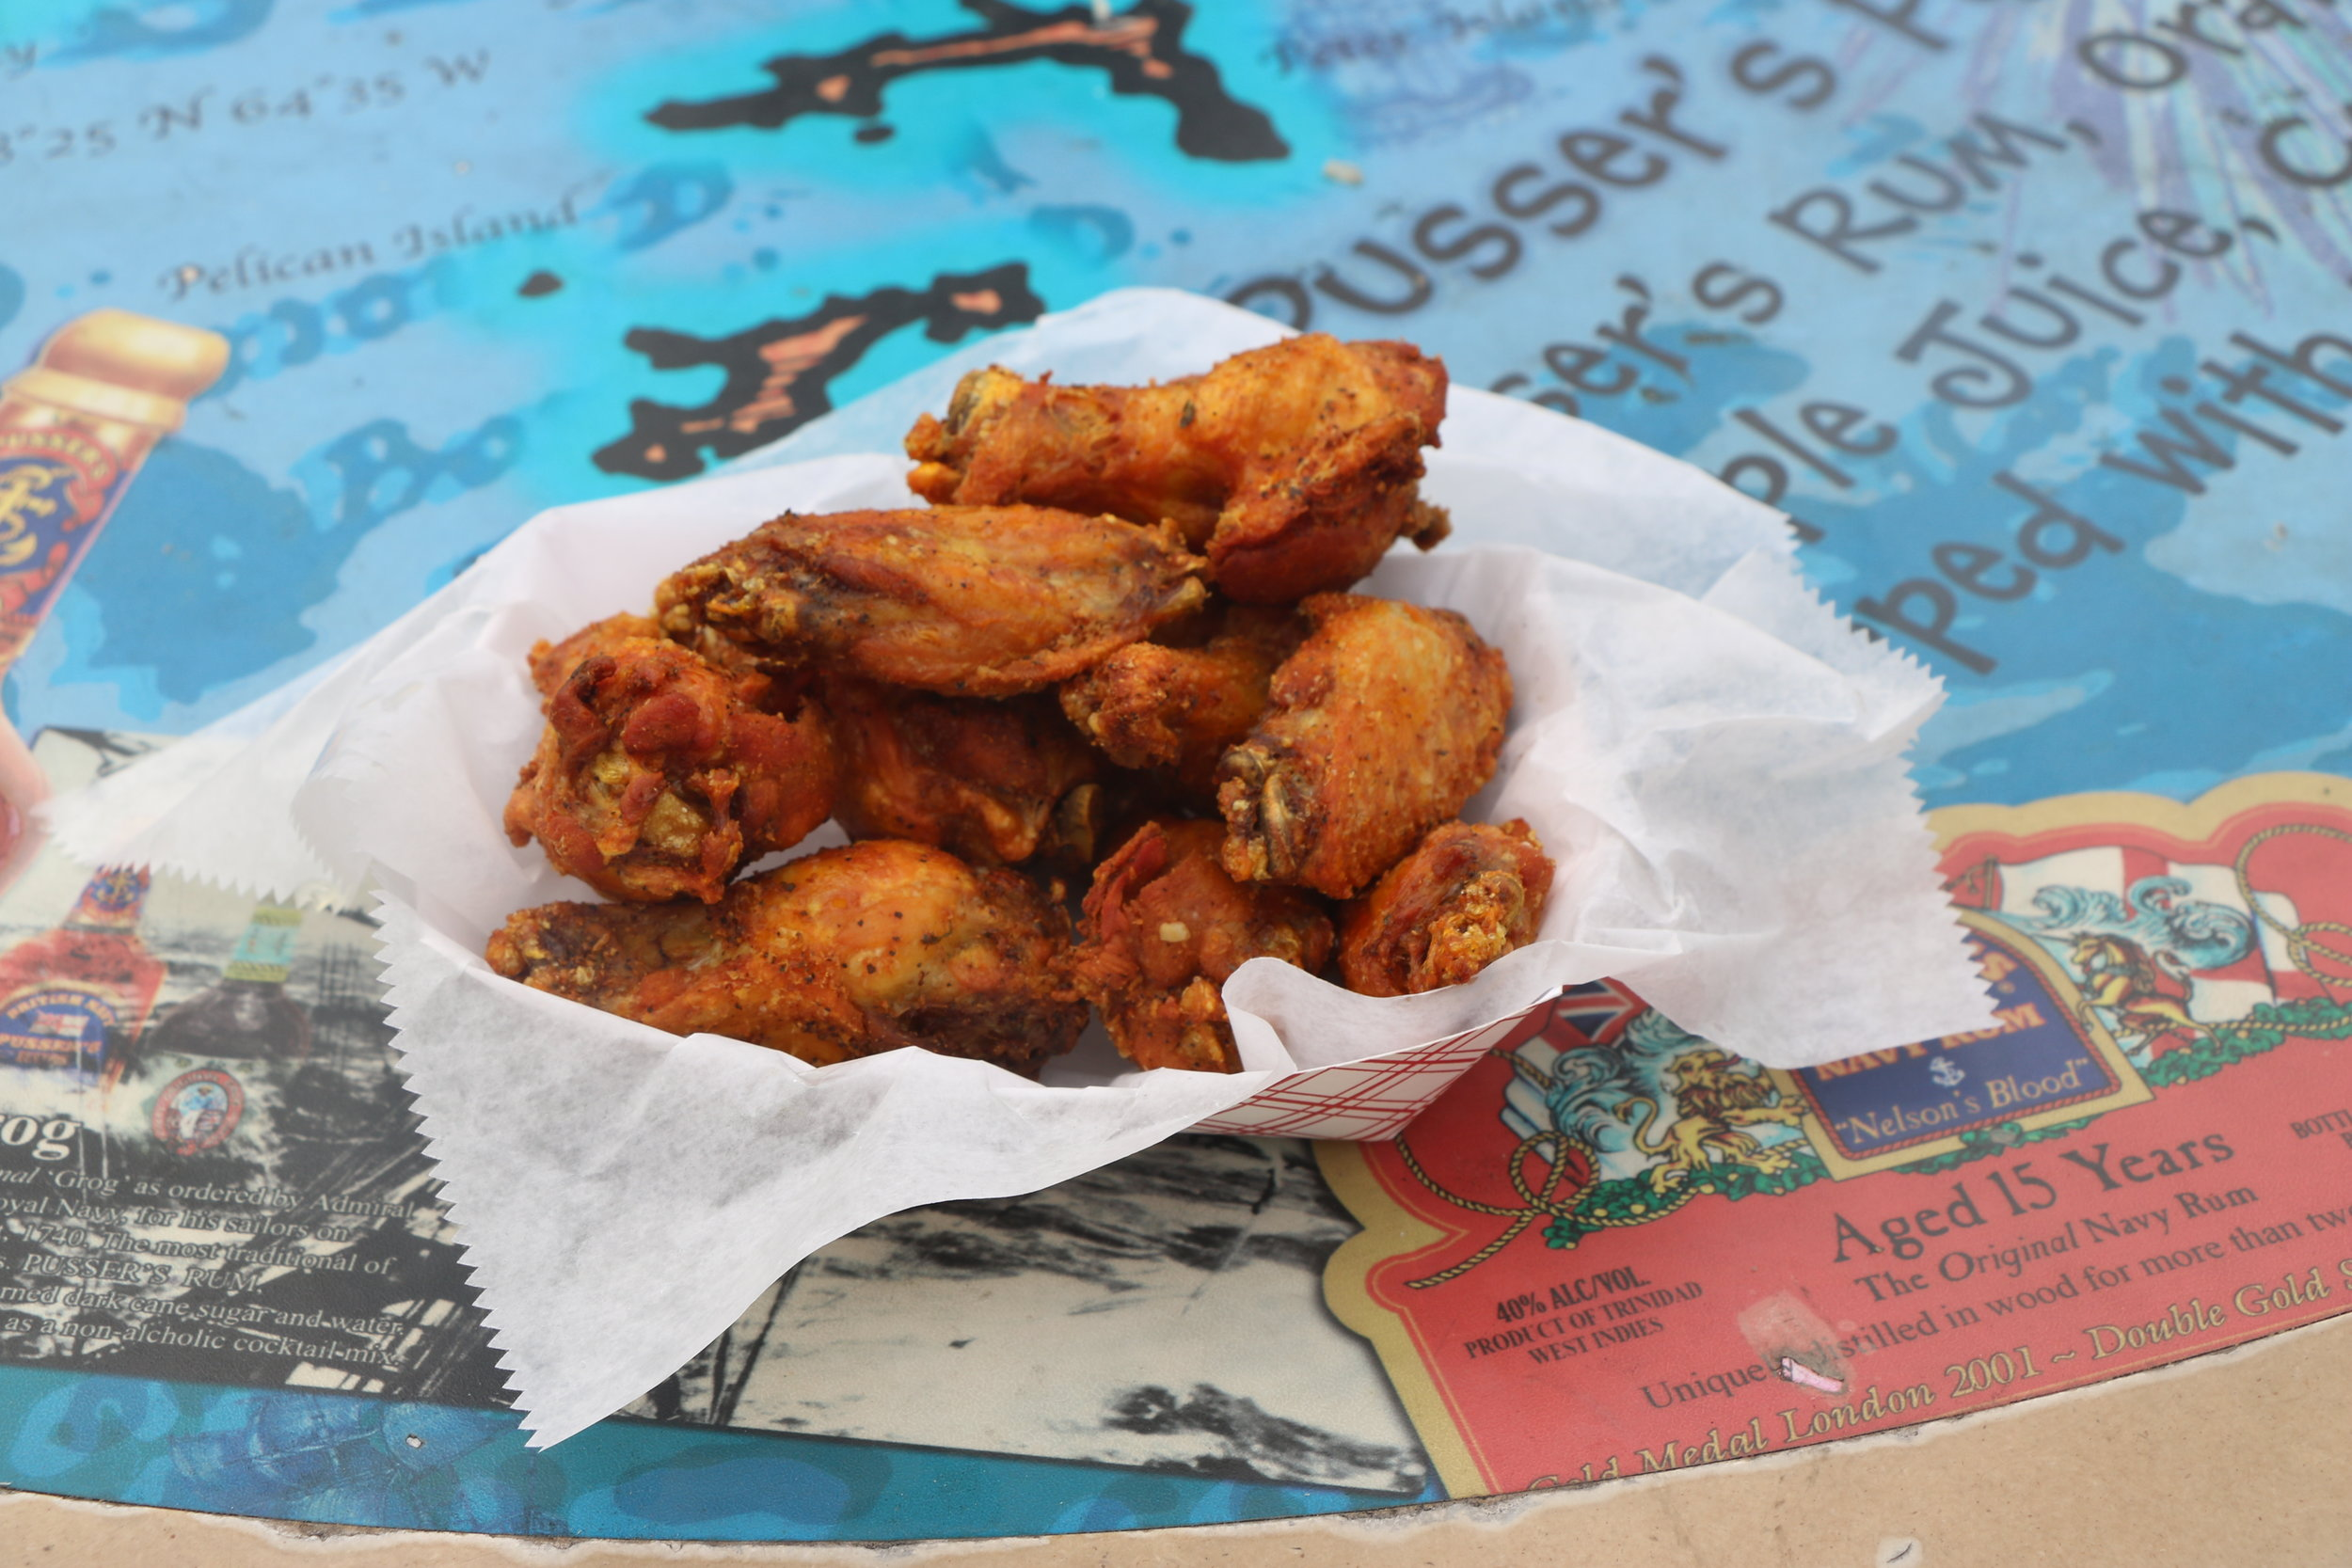 10 wings for $10 -